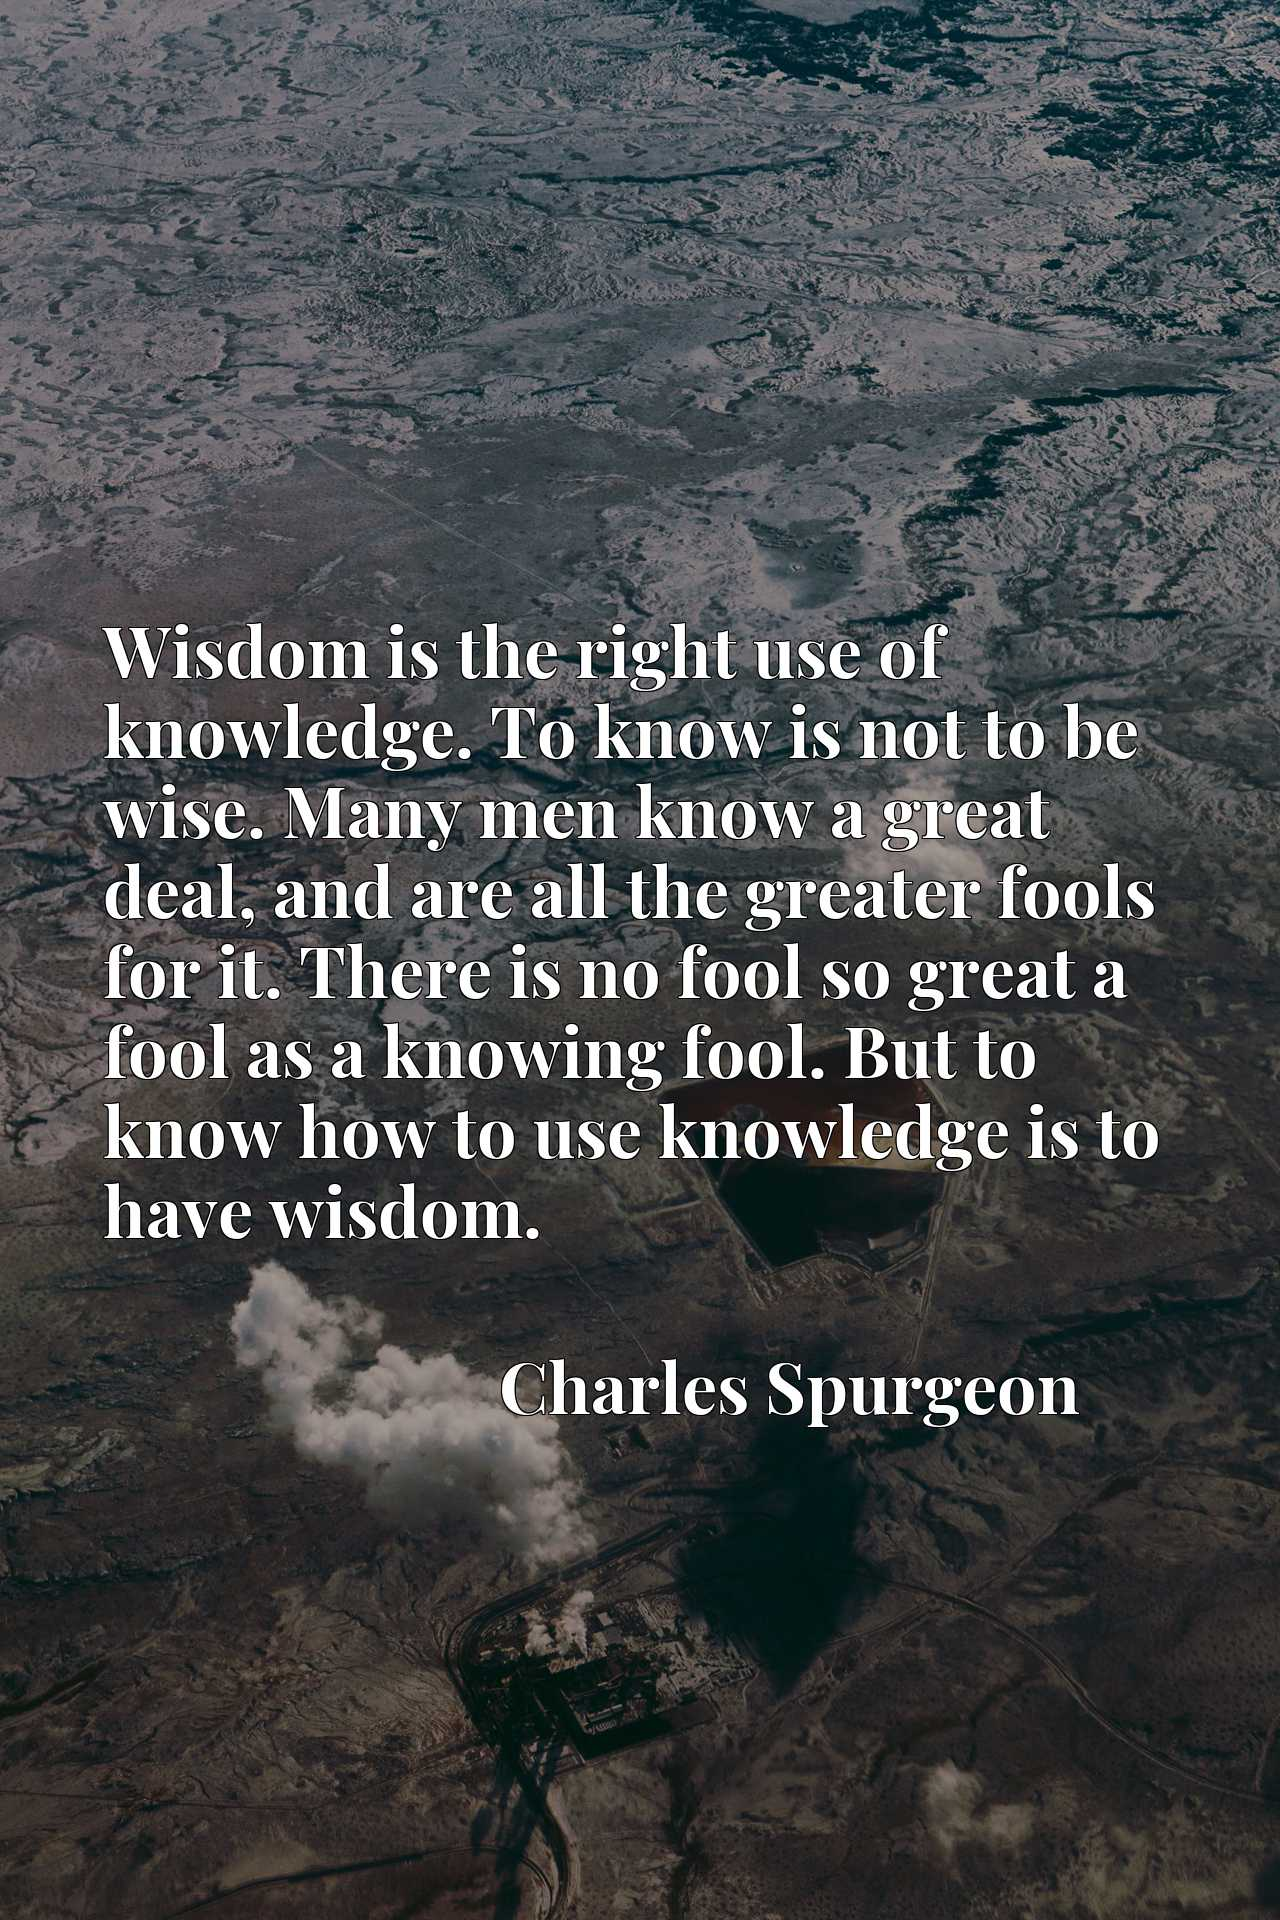 Wisdom is the right use of knowledge. To know is not to be wise. Many men know a great deal, and are all the greater fools for it. There is no fool so great a fool as a knowing fool. But to know how to use knowledge is to have wisdom.